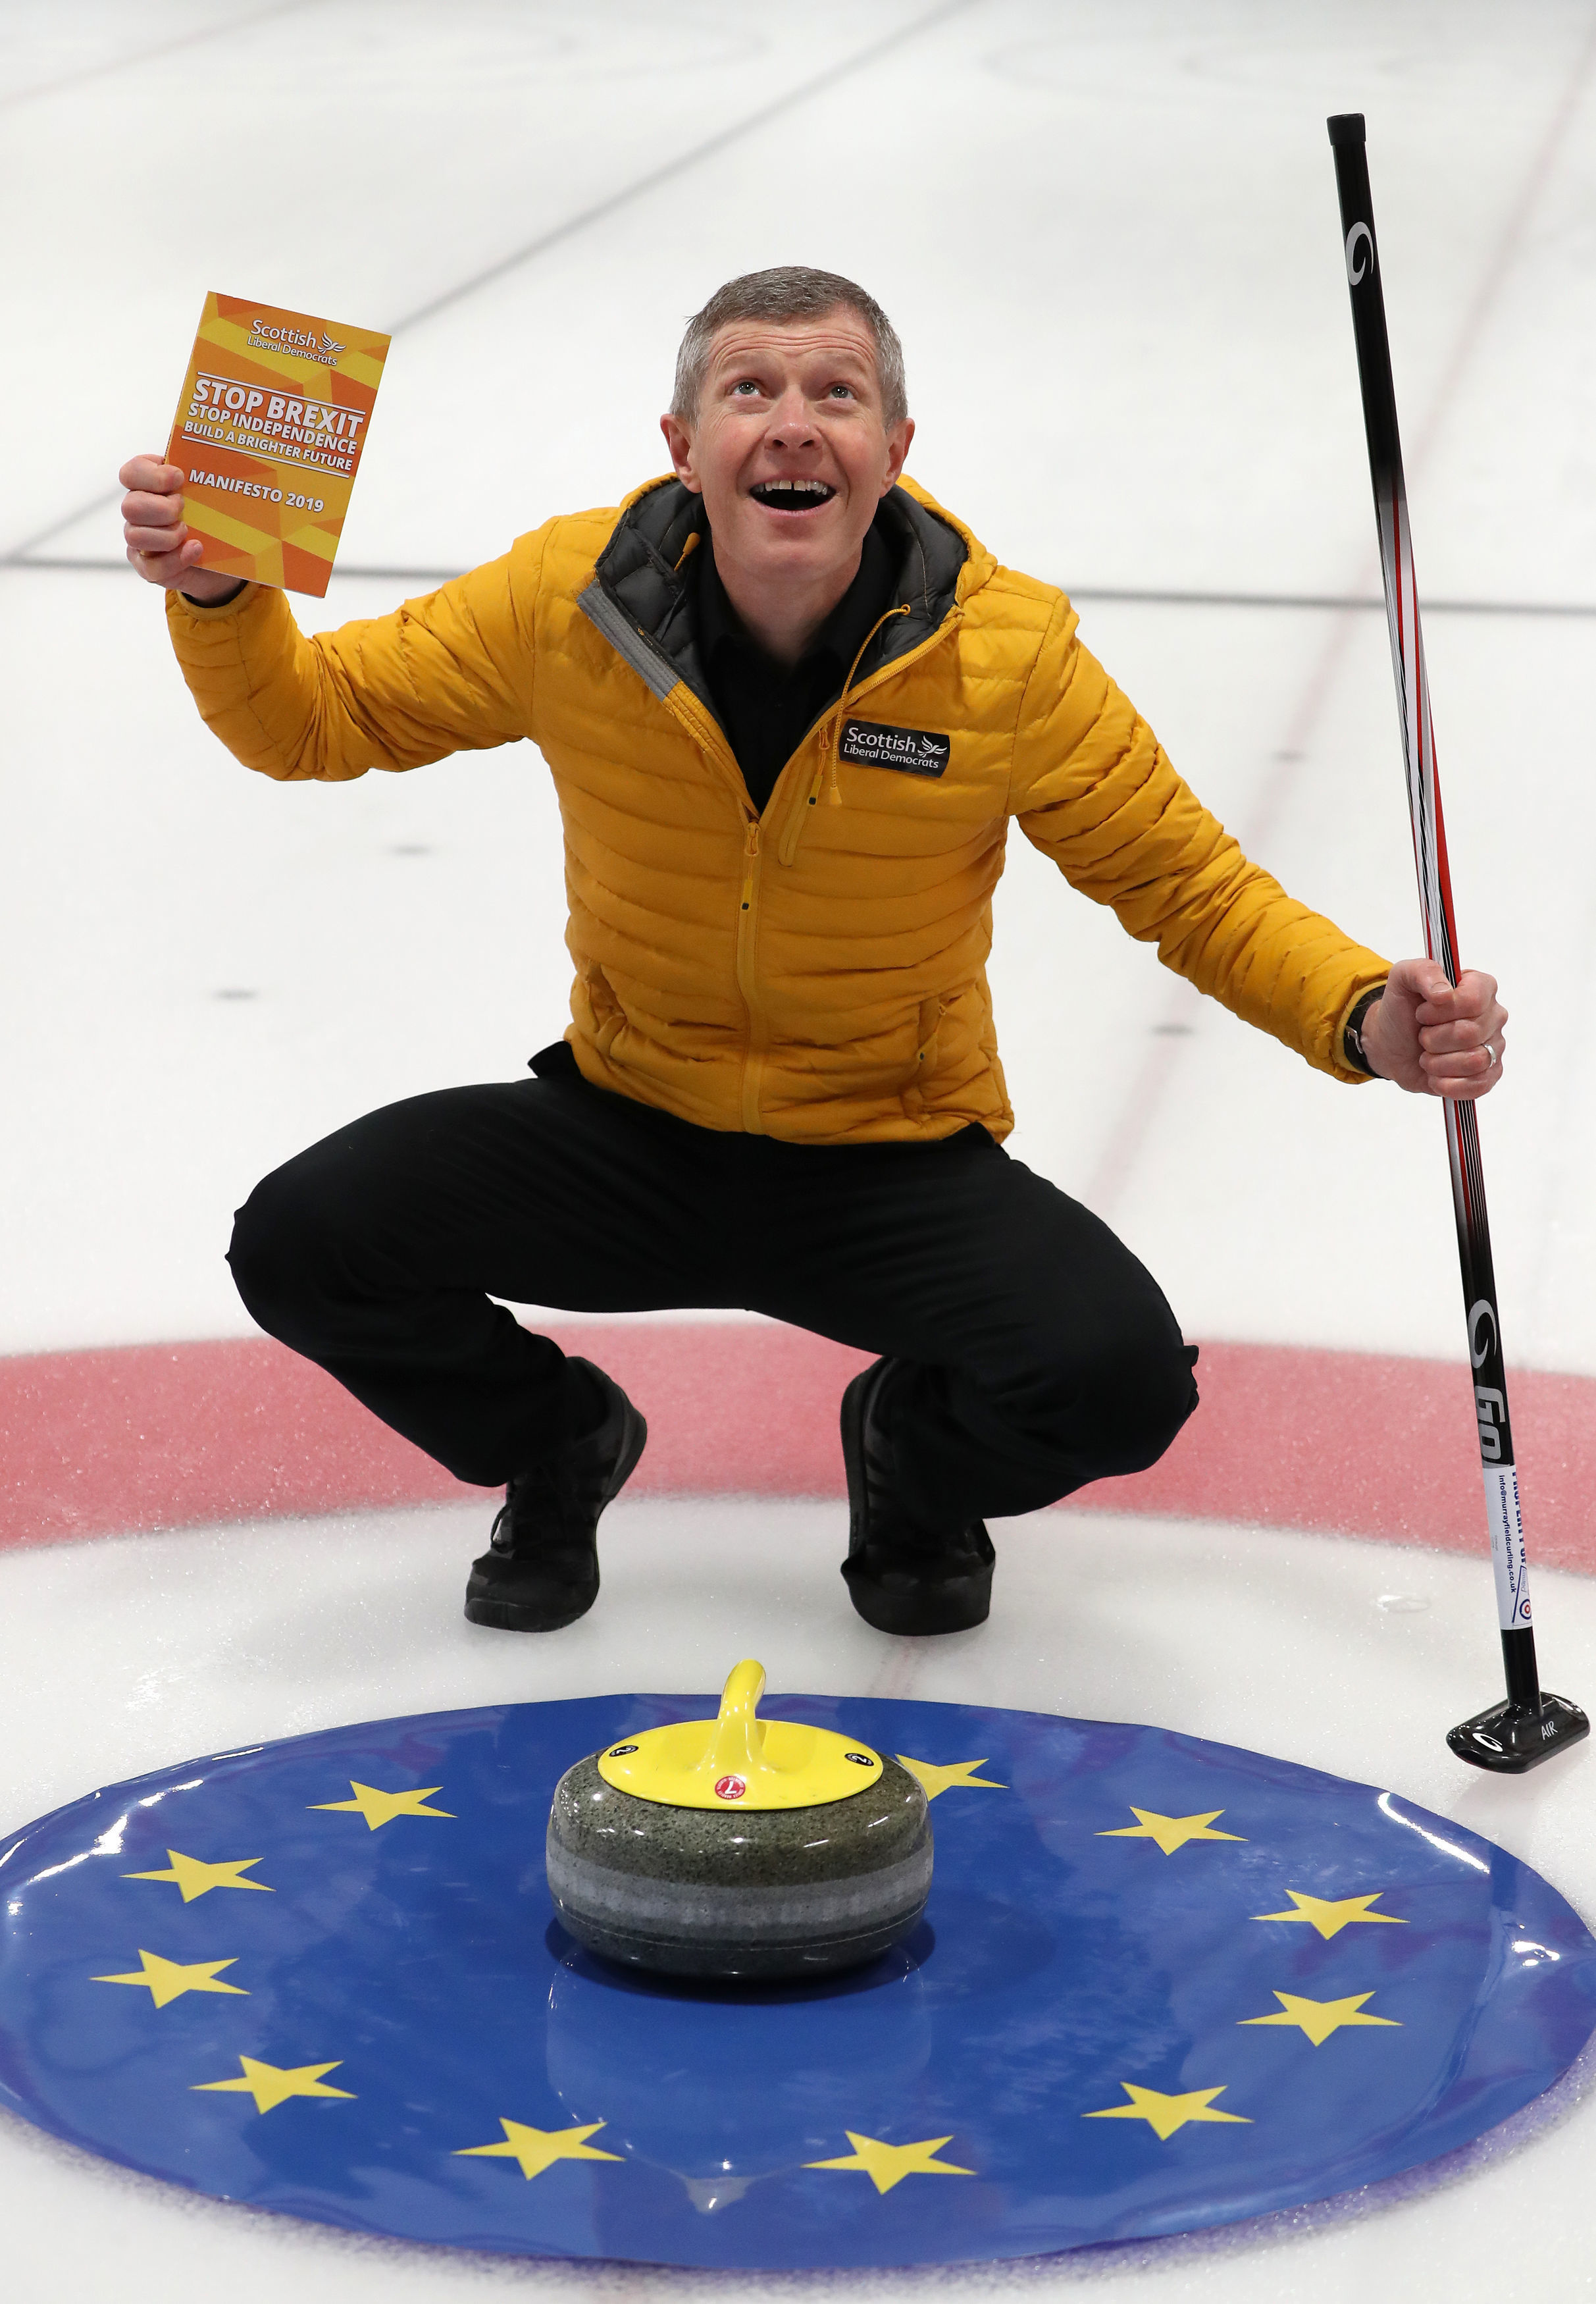 Willie Rennie holds a copy of his party's Scottish Liberal Democrat manifesto for the December 12 General Election at Murrayfield Curling Rink, Edinburgh. PA Photo. Picture date: Friday November 29, 2019. See PA story POLITICS Election. Photo credit should read: Andrew Milligan/PA Wire